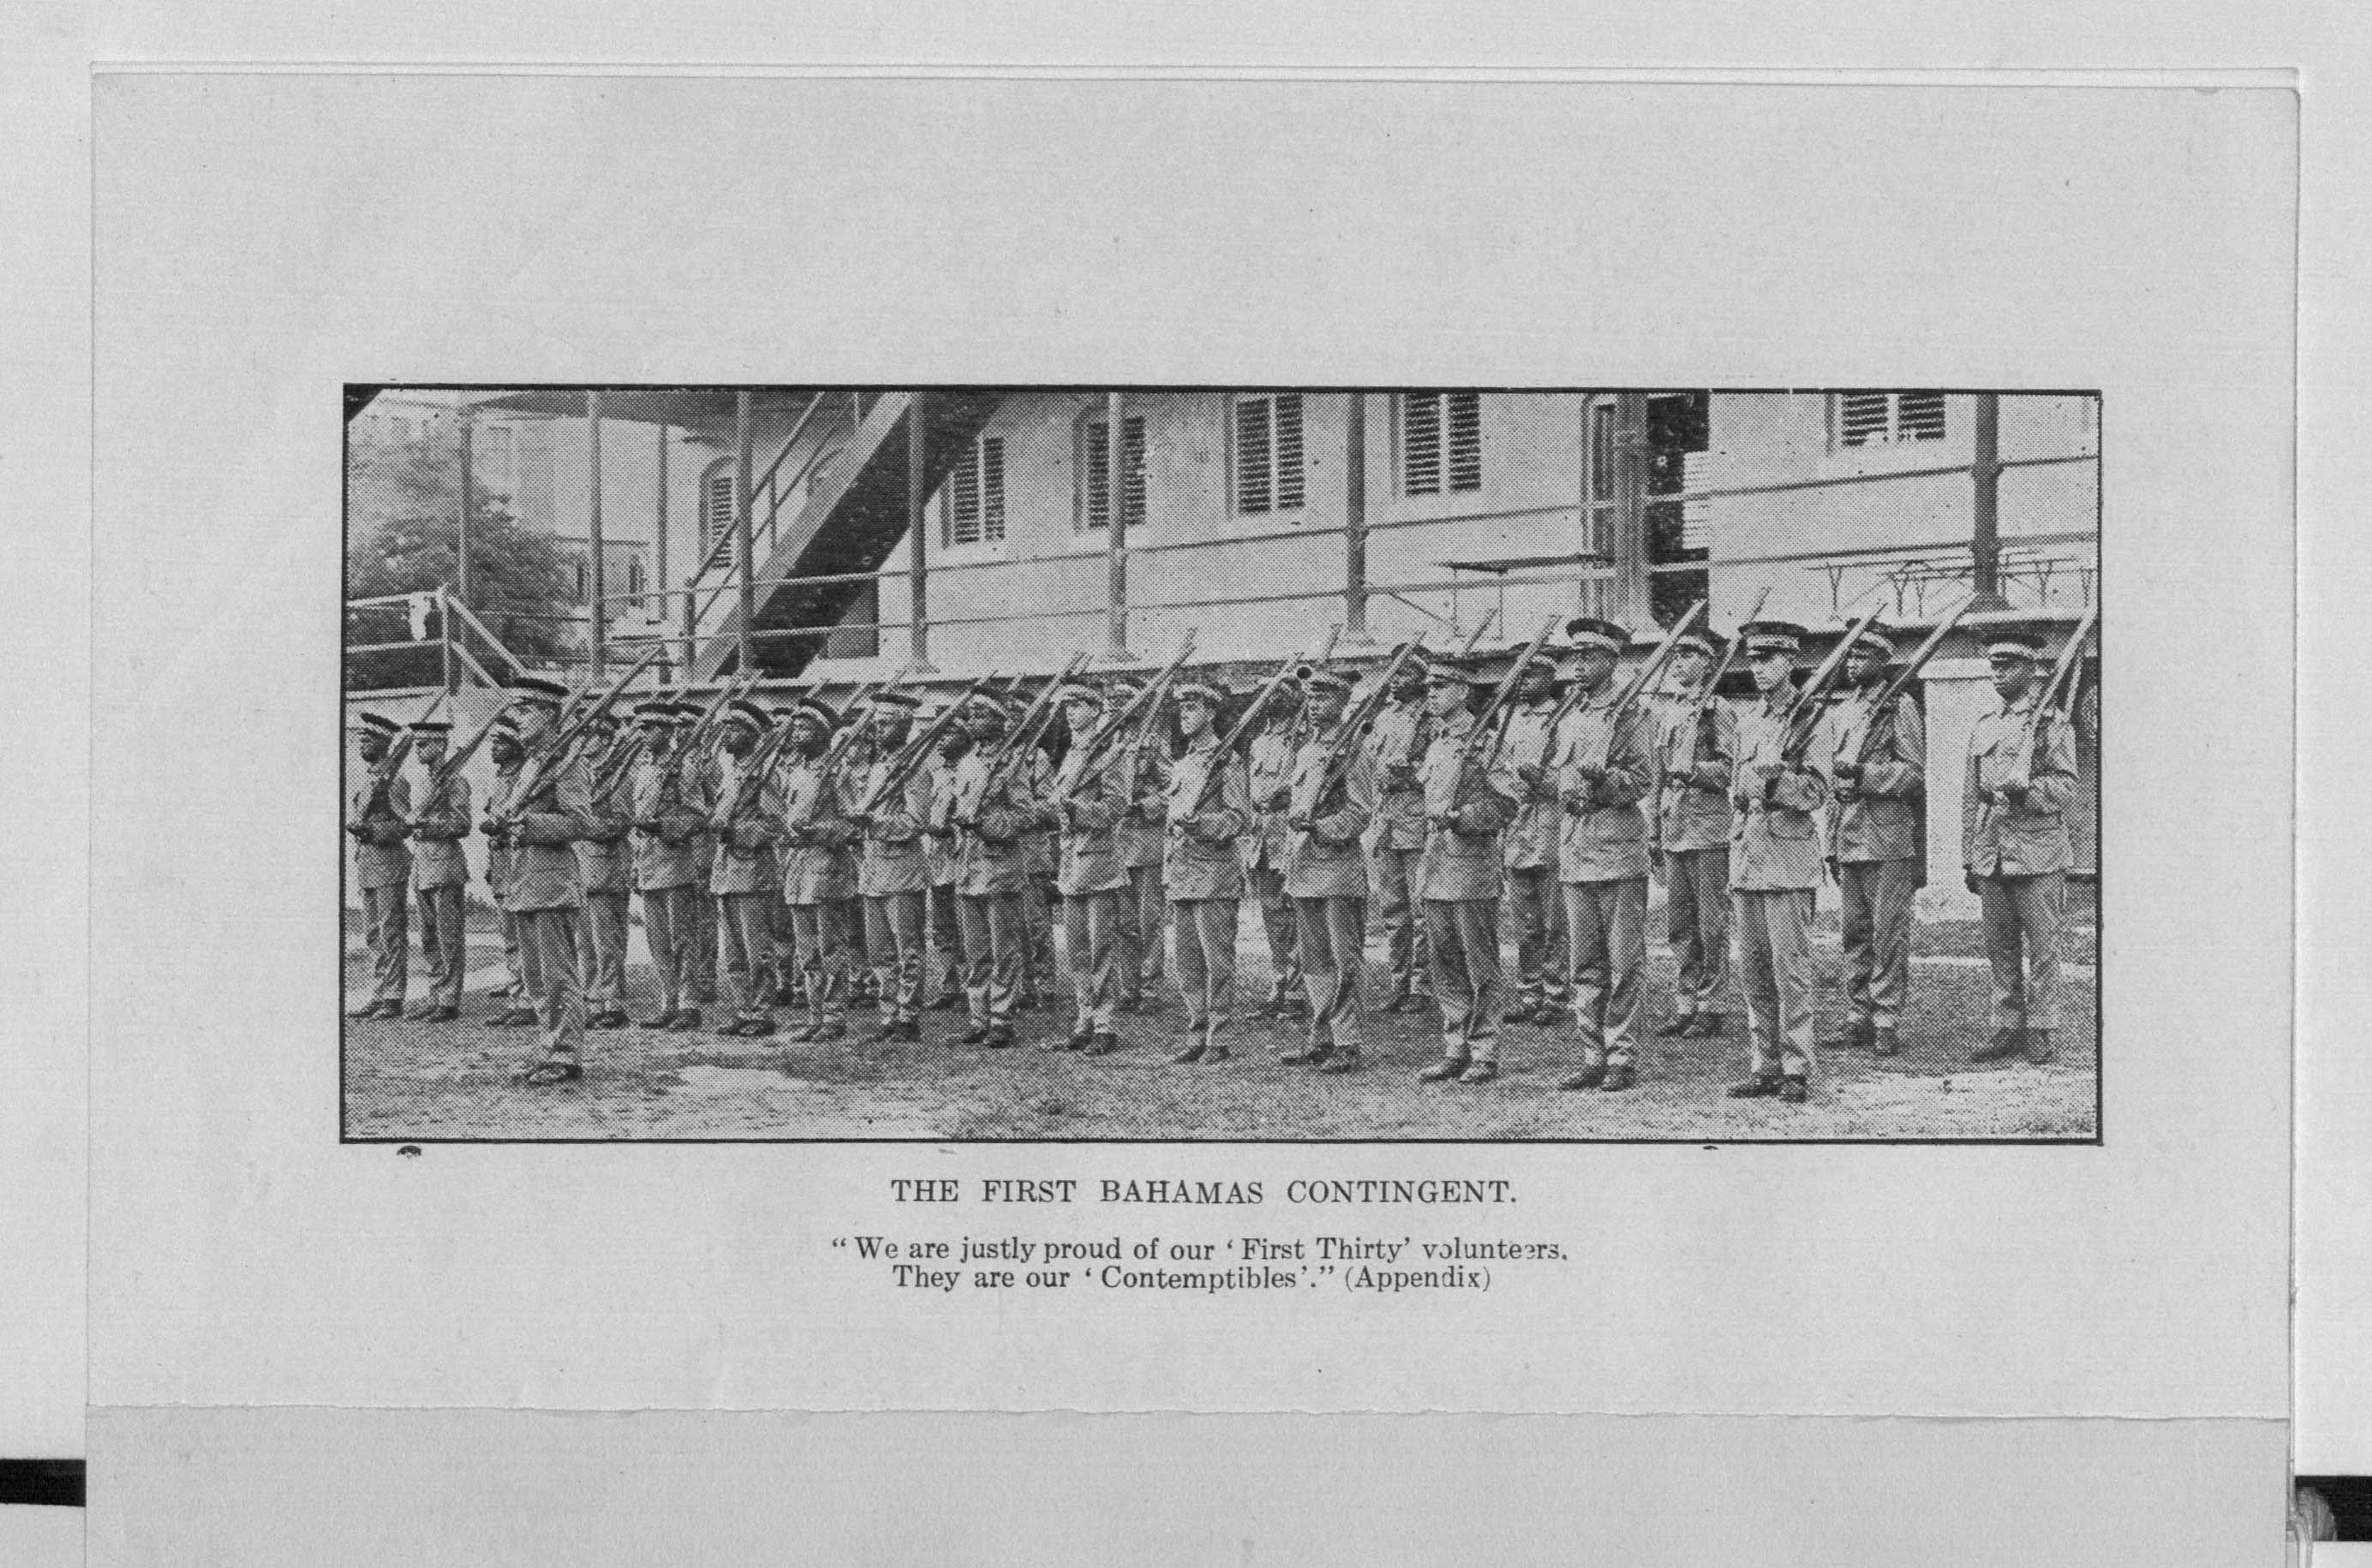 Publication from 1919 giving a glimpse into the experiences of one of the West Indian battalions.